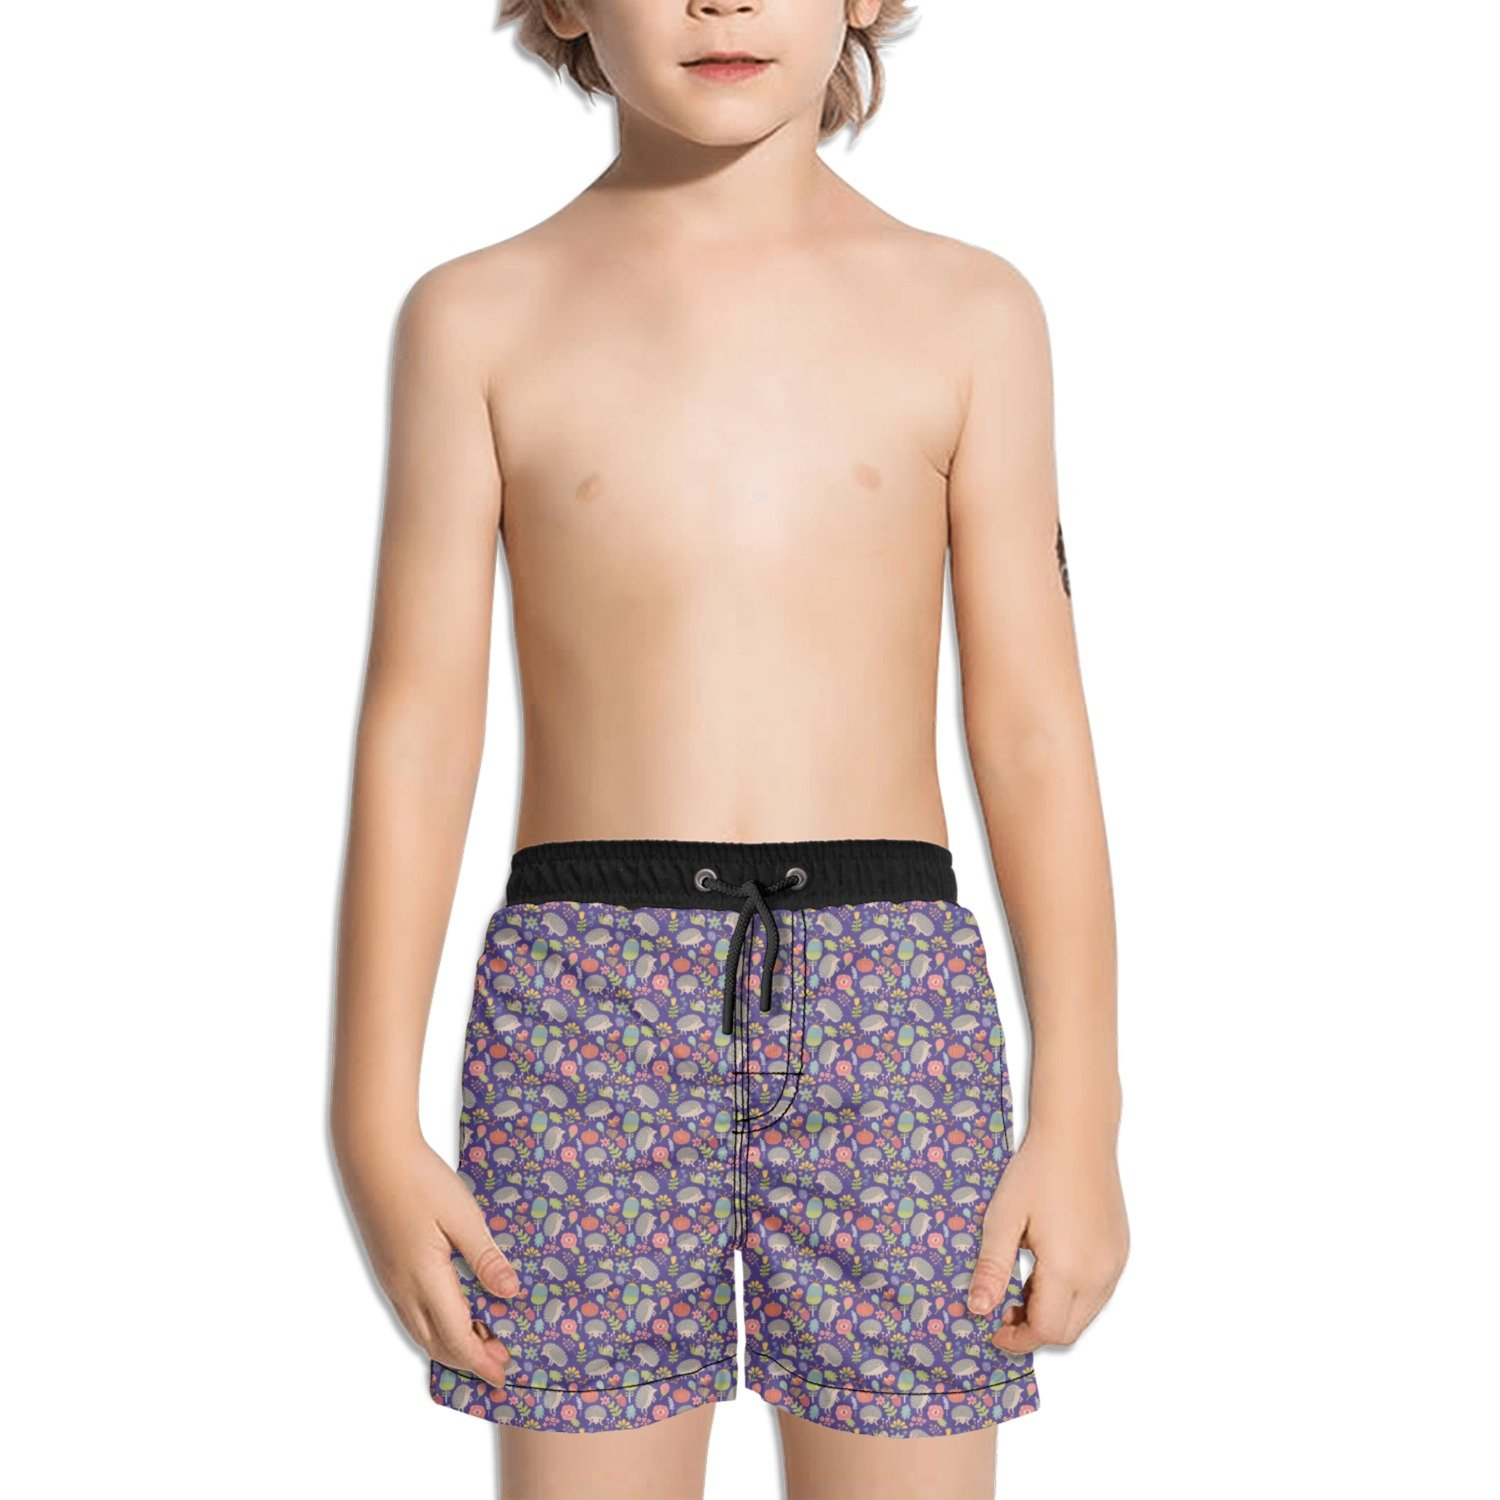 Trum Namii Boys Quick Dry Swim Trunks Living On The Hedge Hedgehog with Glasses Shorts